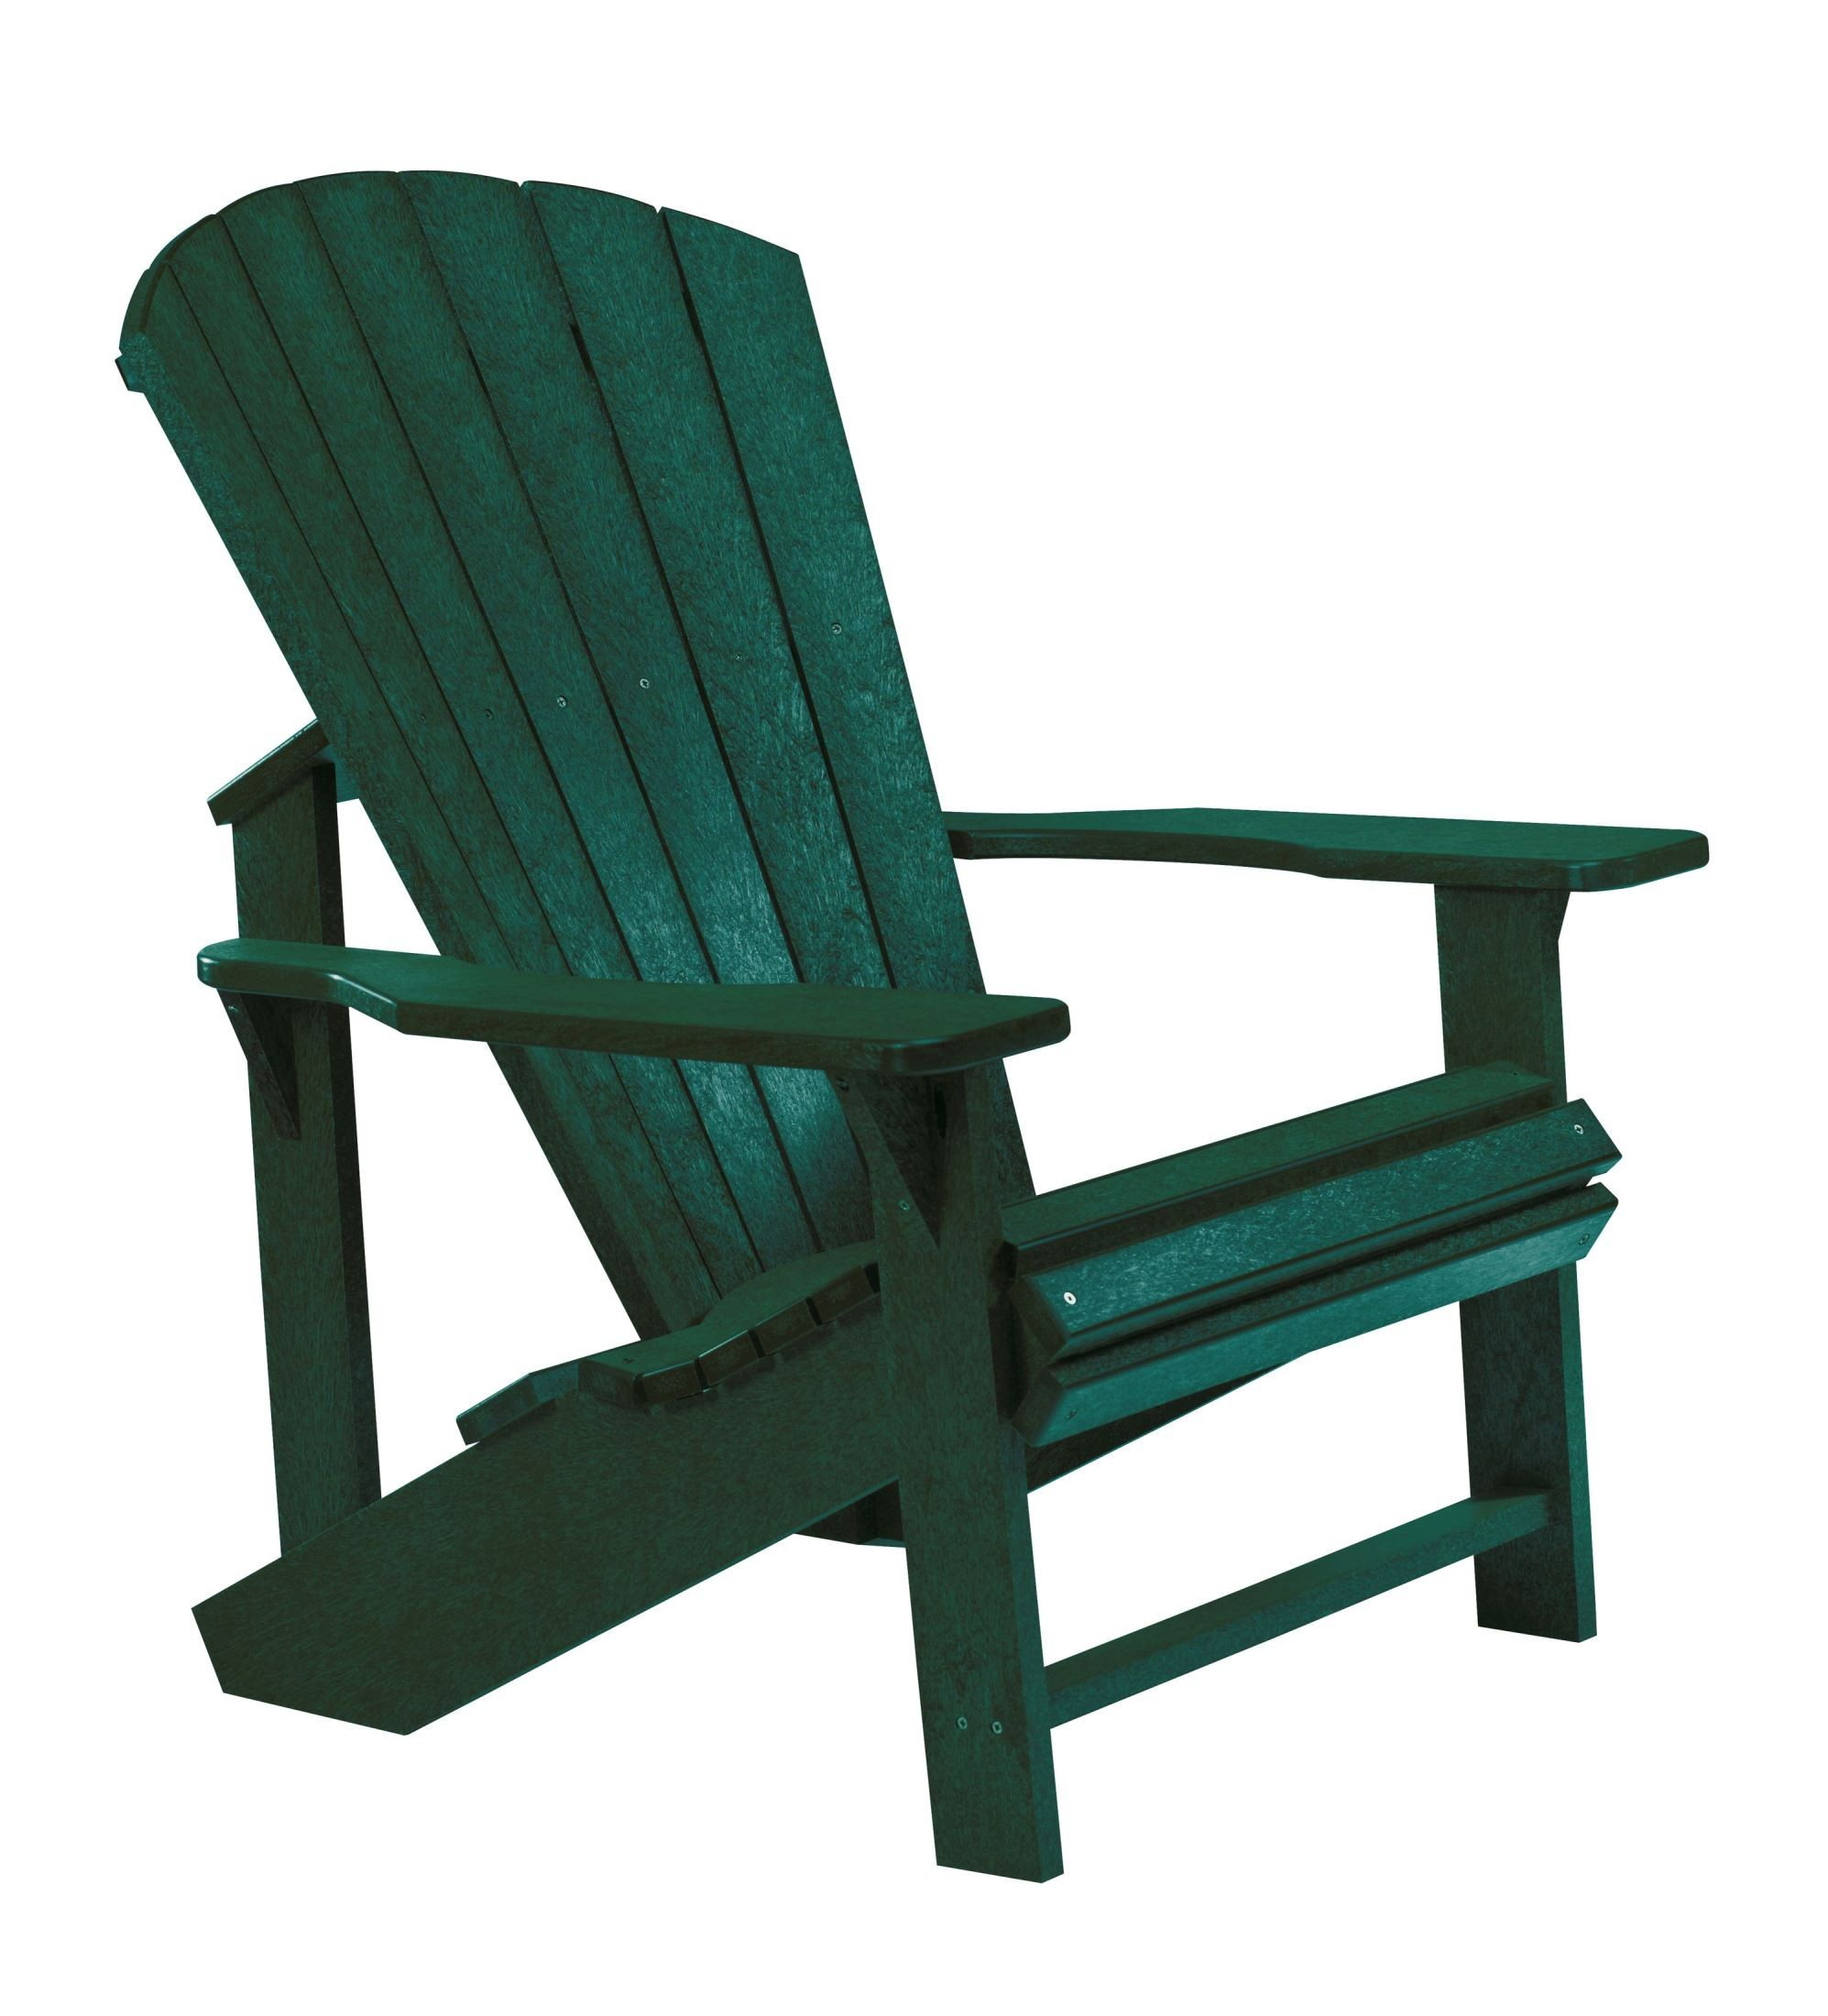 plastic adirondack chair off white office generations green from cr c01 06